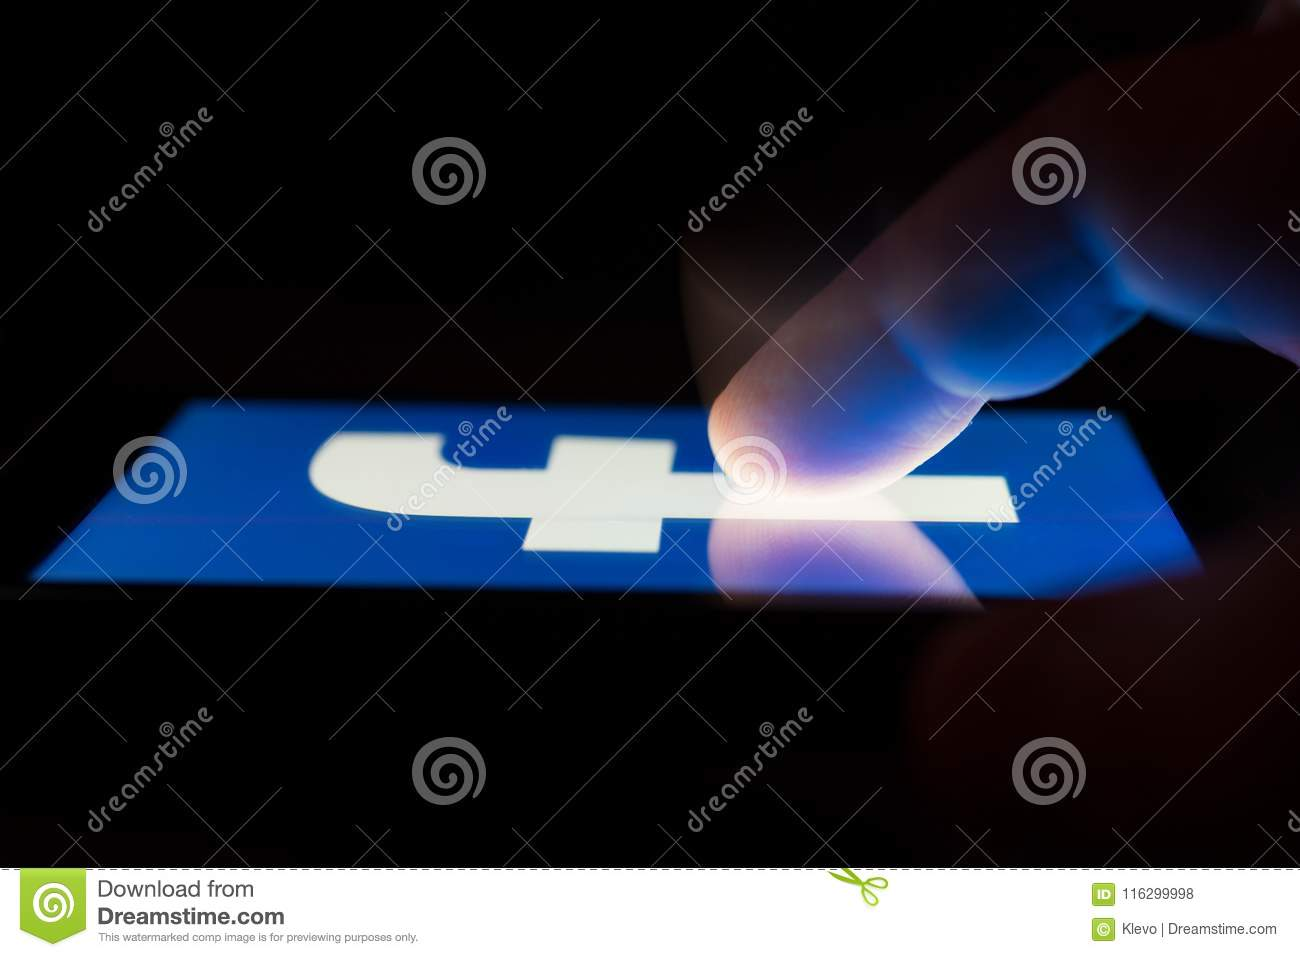 MOSCOW, RUSSIA - May 9, 2018: A smartphone lying on a table in the dark, displaying the logo of the Facebook.